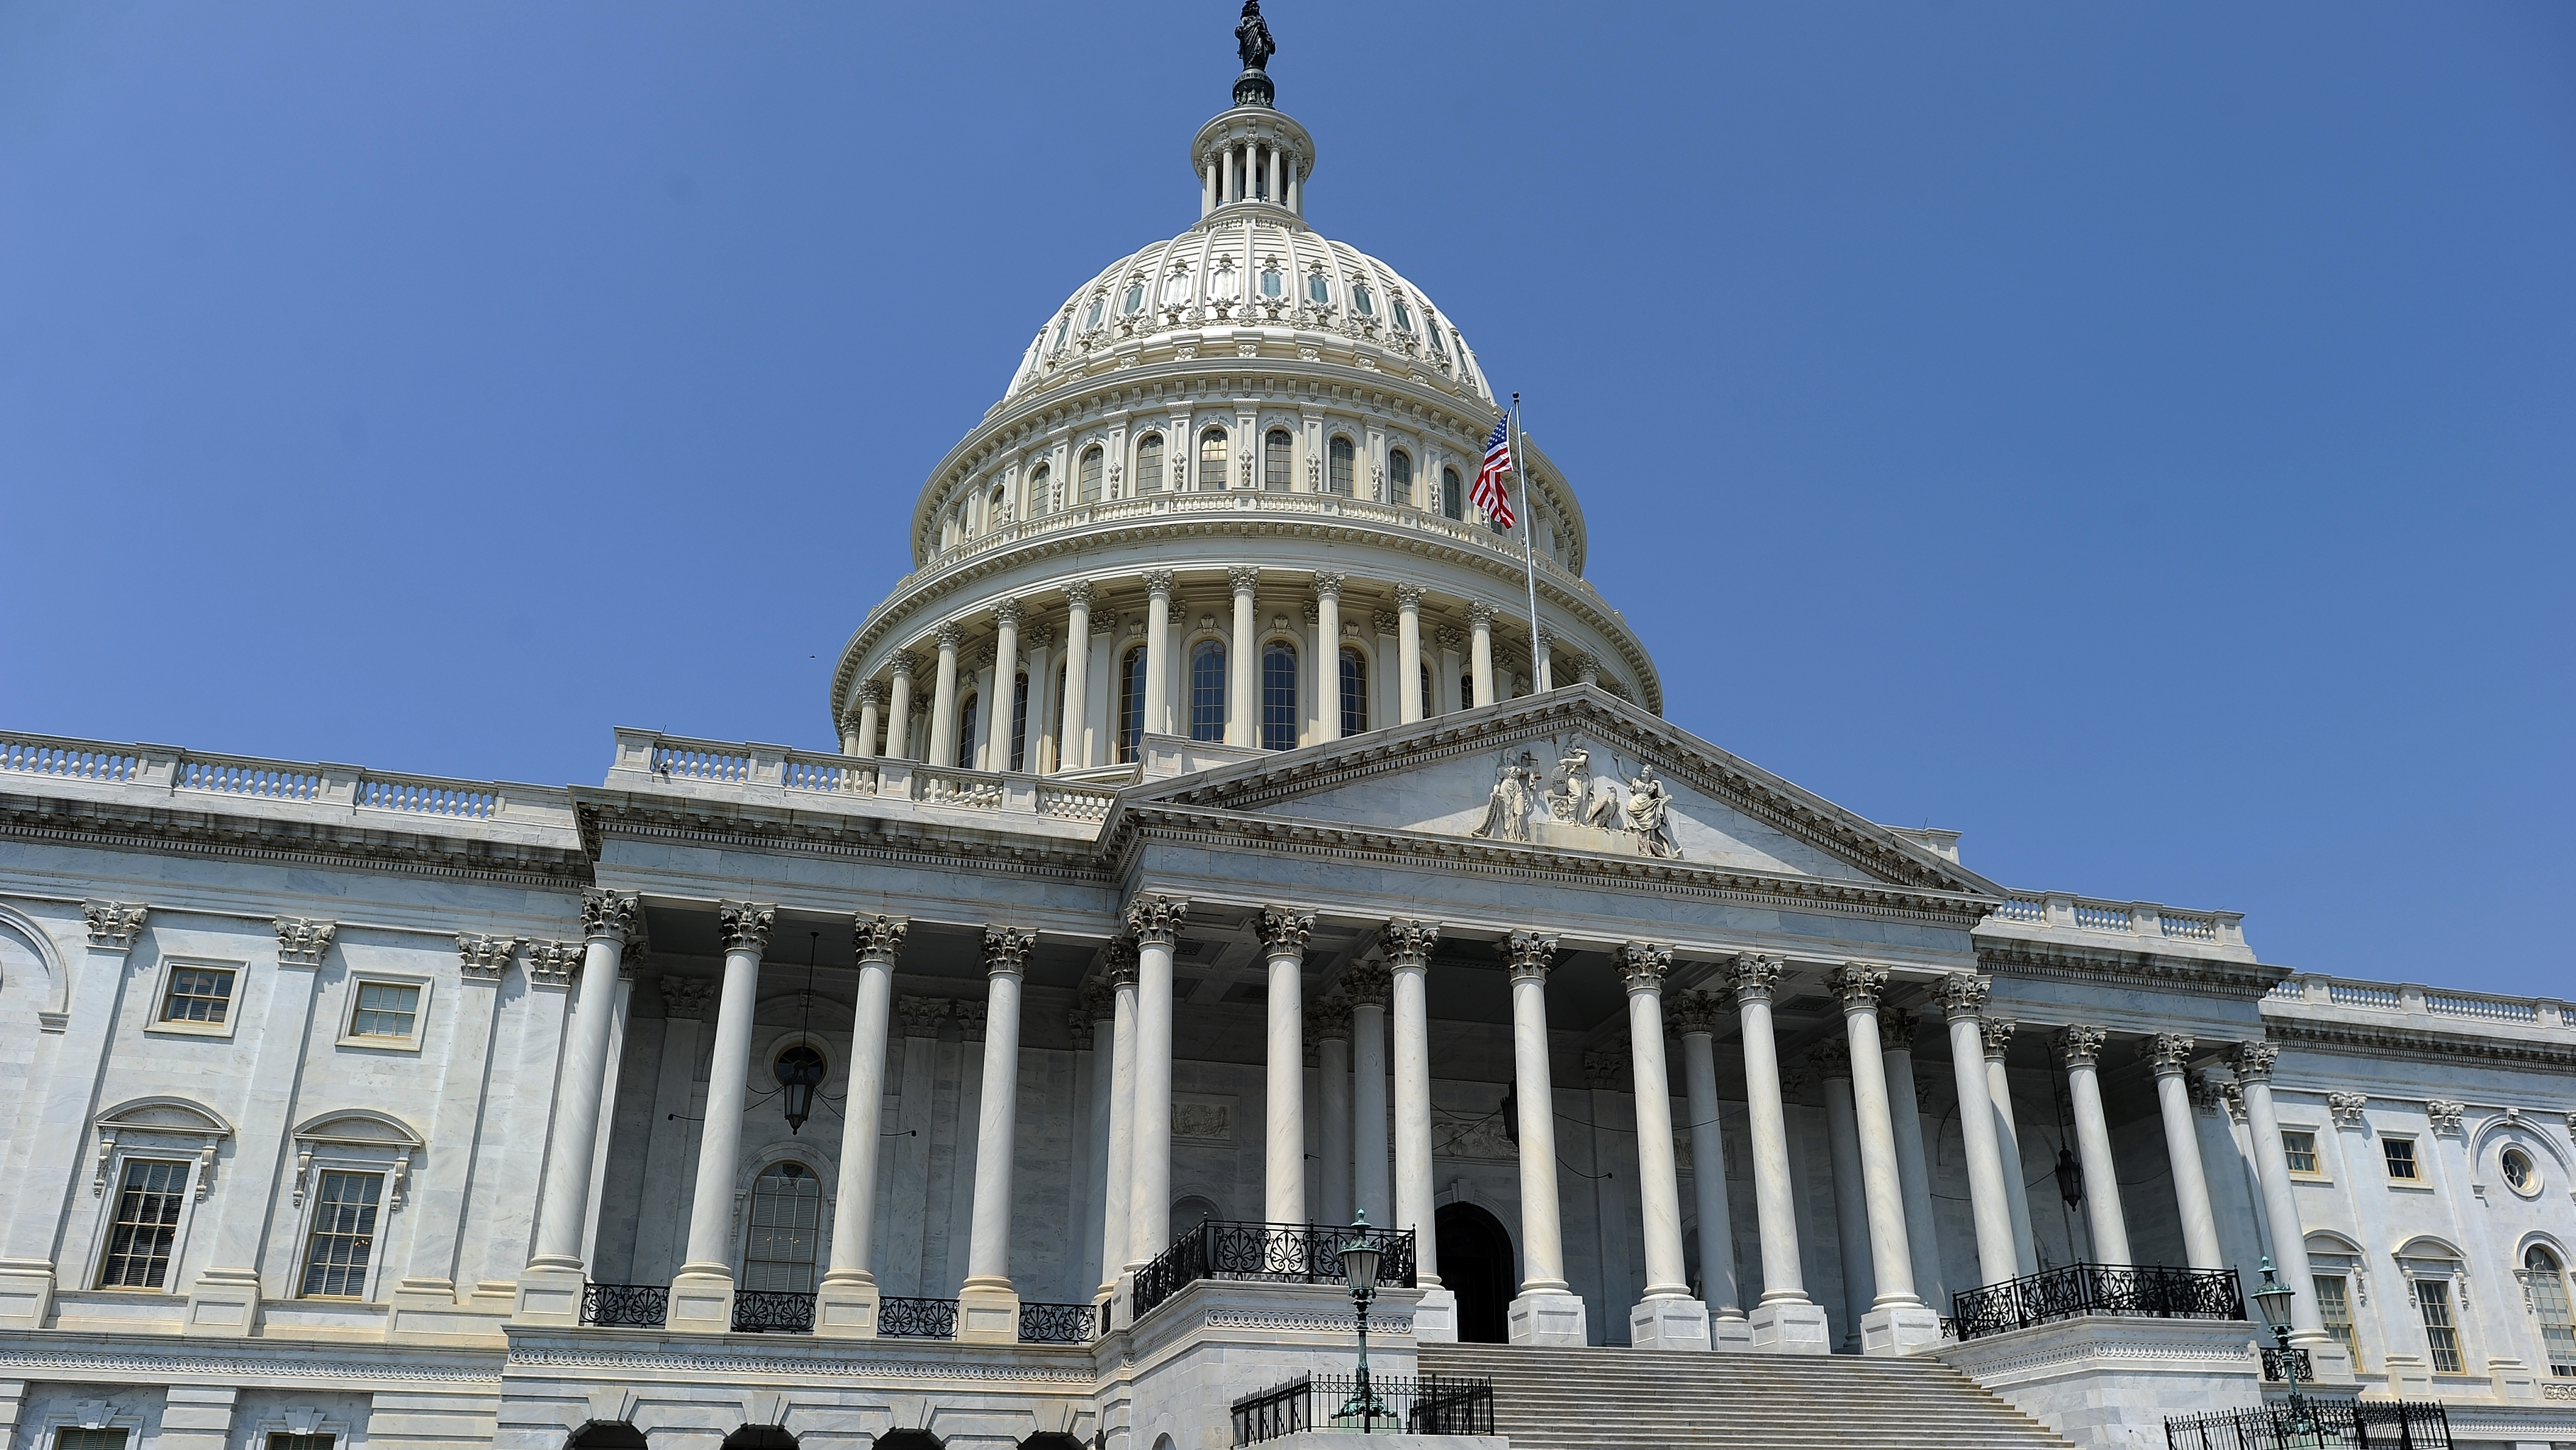 Congress: Where Food Reforms Go To Die?